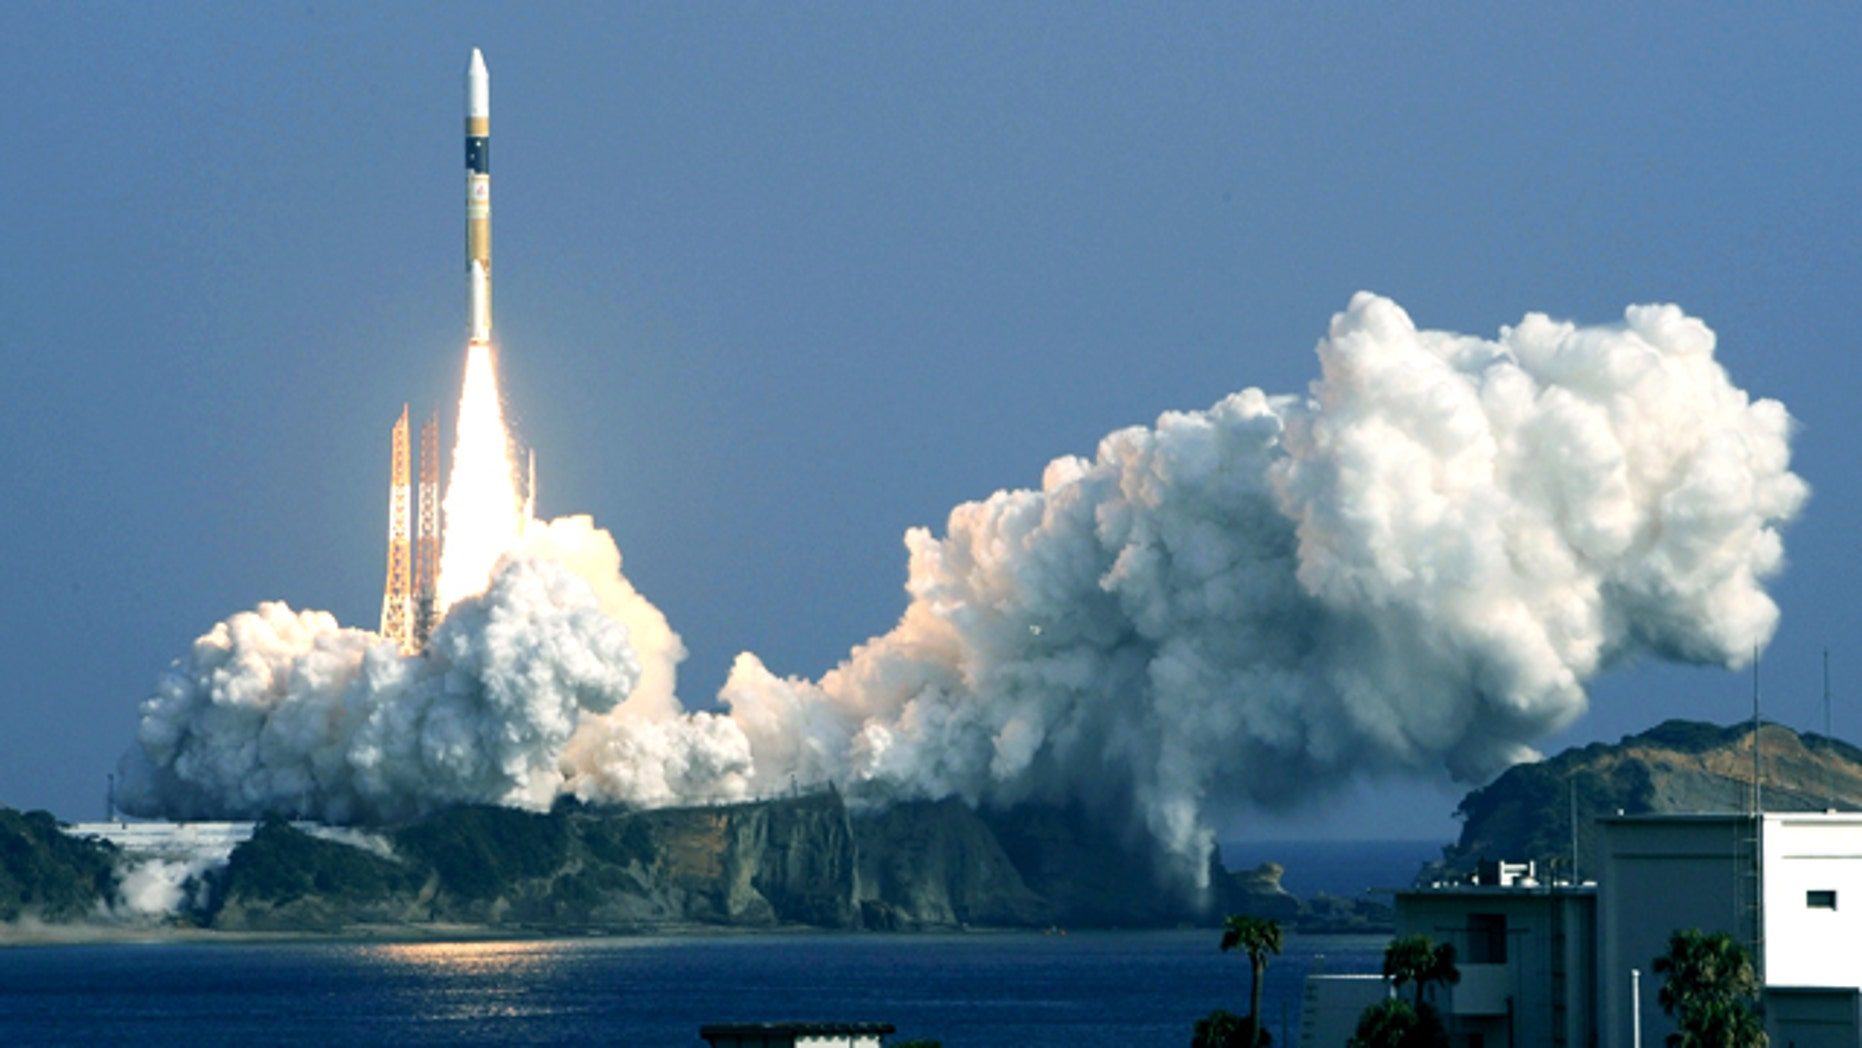 Dec. 12, 2011: An H-2A rocket carrying a radar satellite lifts off from the Tanegashima Space Center in Tanegashima, Kagoshima Prefecture, southwestern Japan. Japan has successfully launched the intelligence-gathering satellite, its second this year.